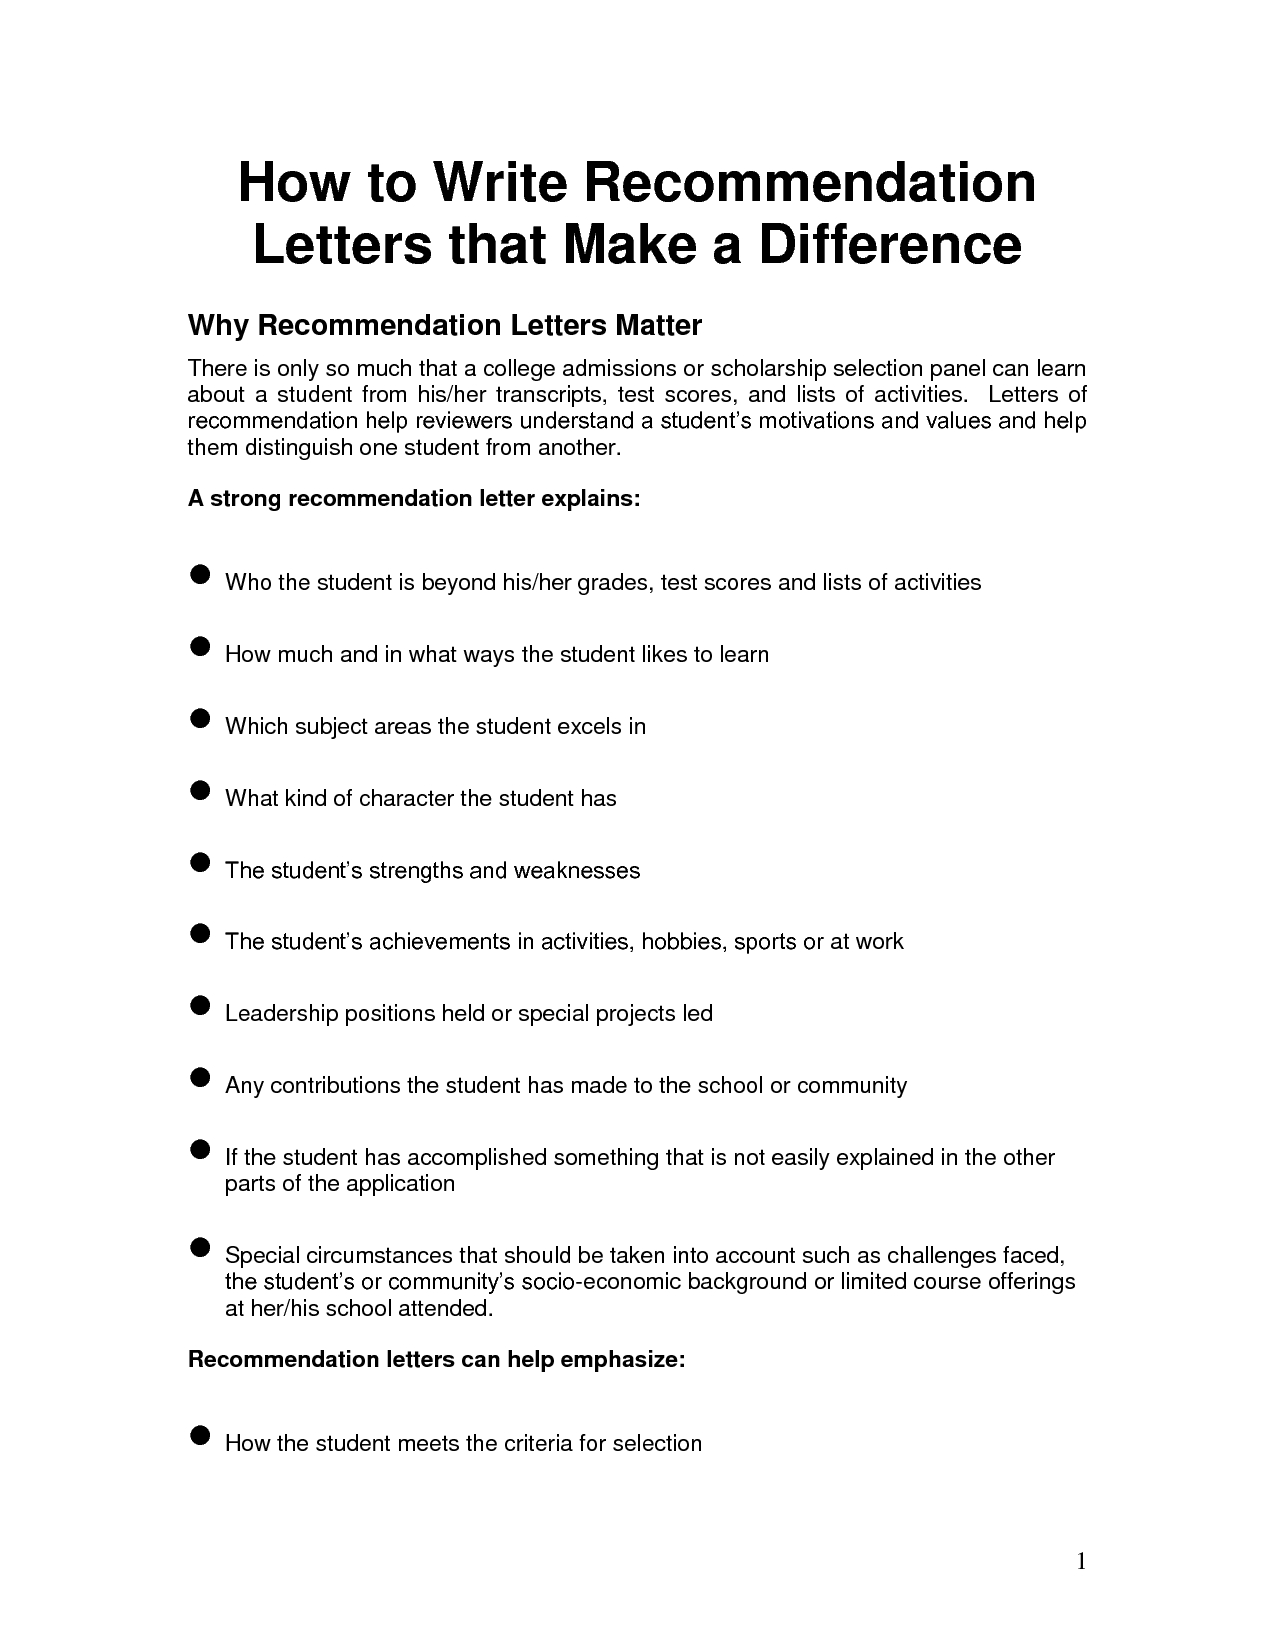 child support letter child support modification letter template examples 20837 | free letter of reference template of child support modification letter template